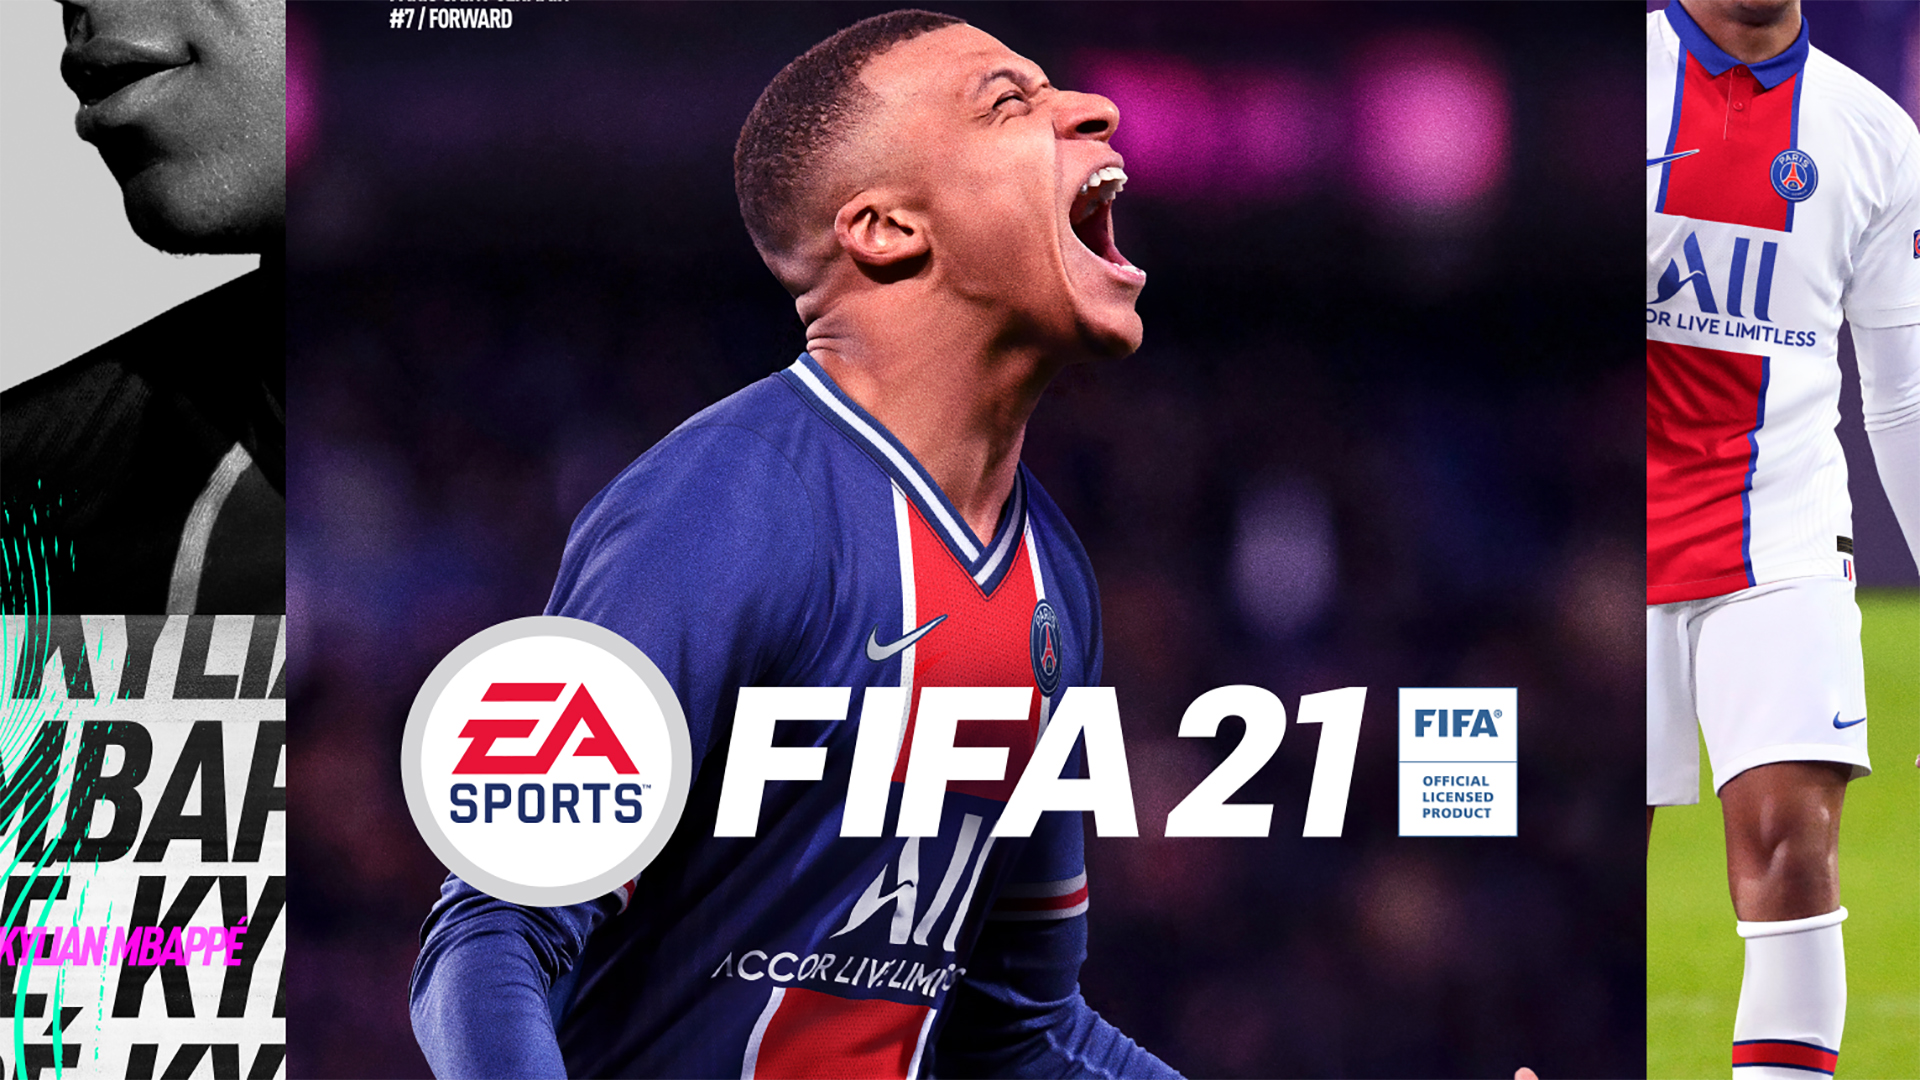 Best streaming games - FIFA